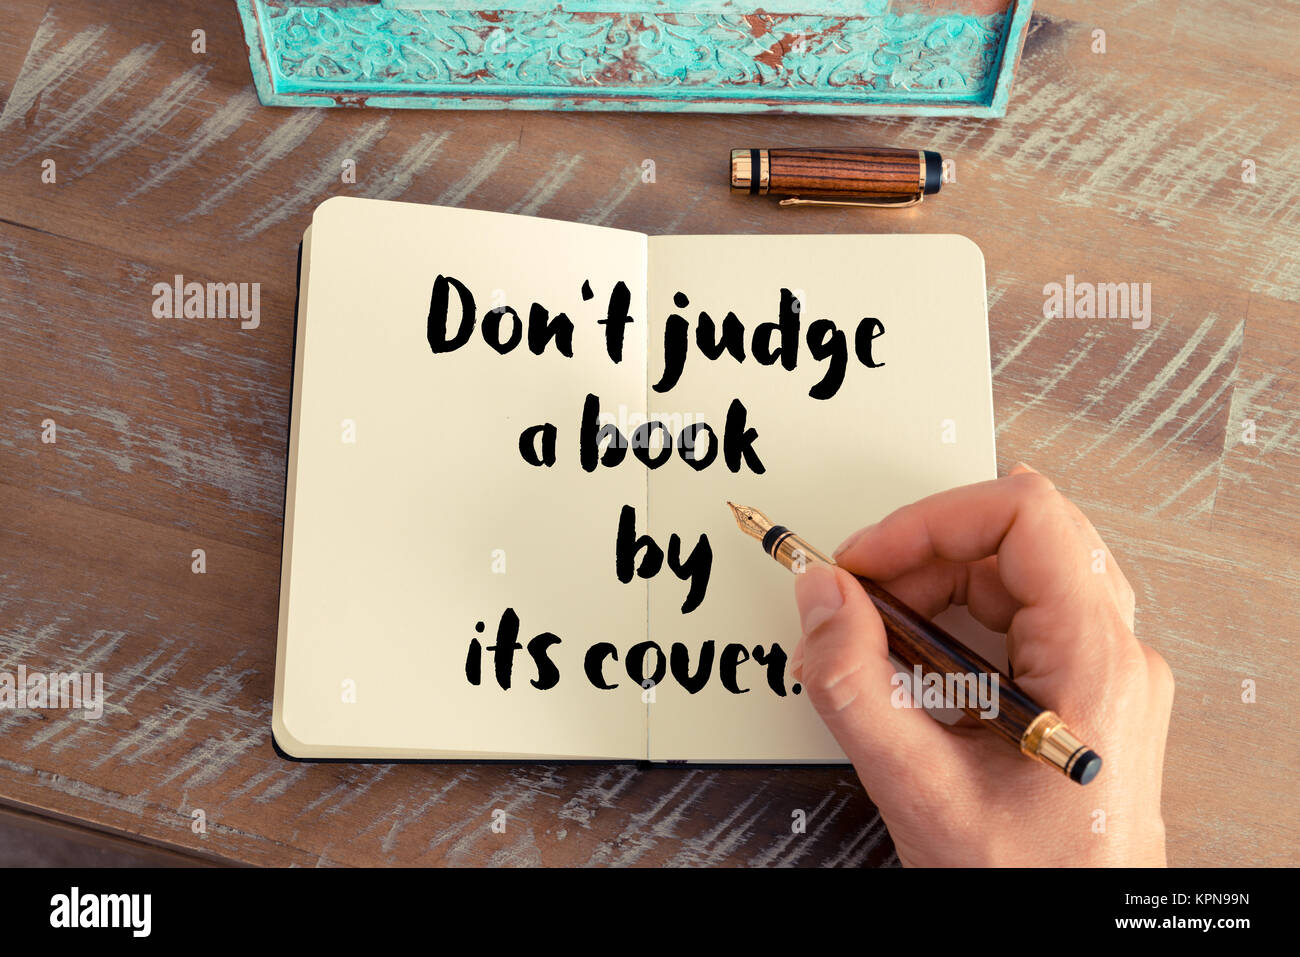 Dont Judge A Book By Its Cover Stock Photos & Dont Judge A ...